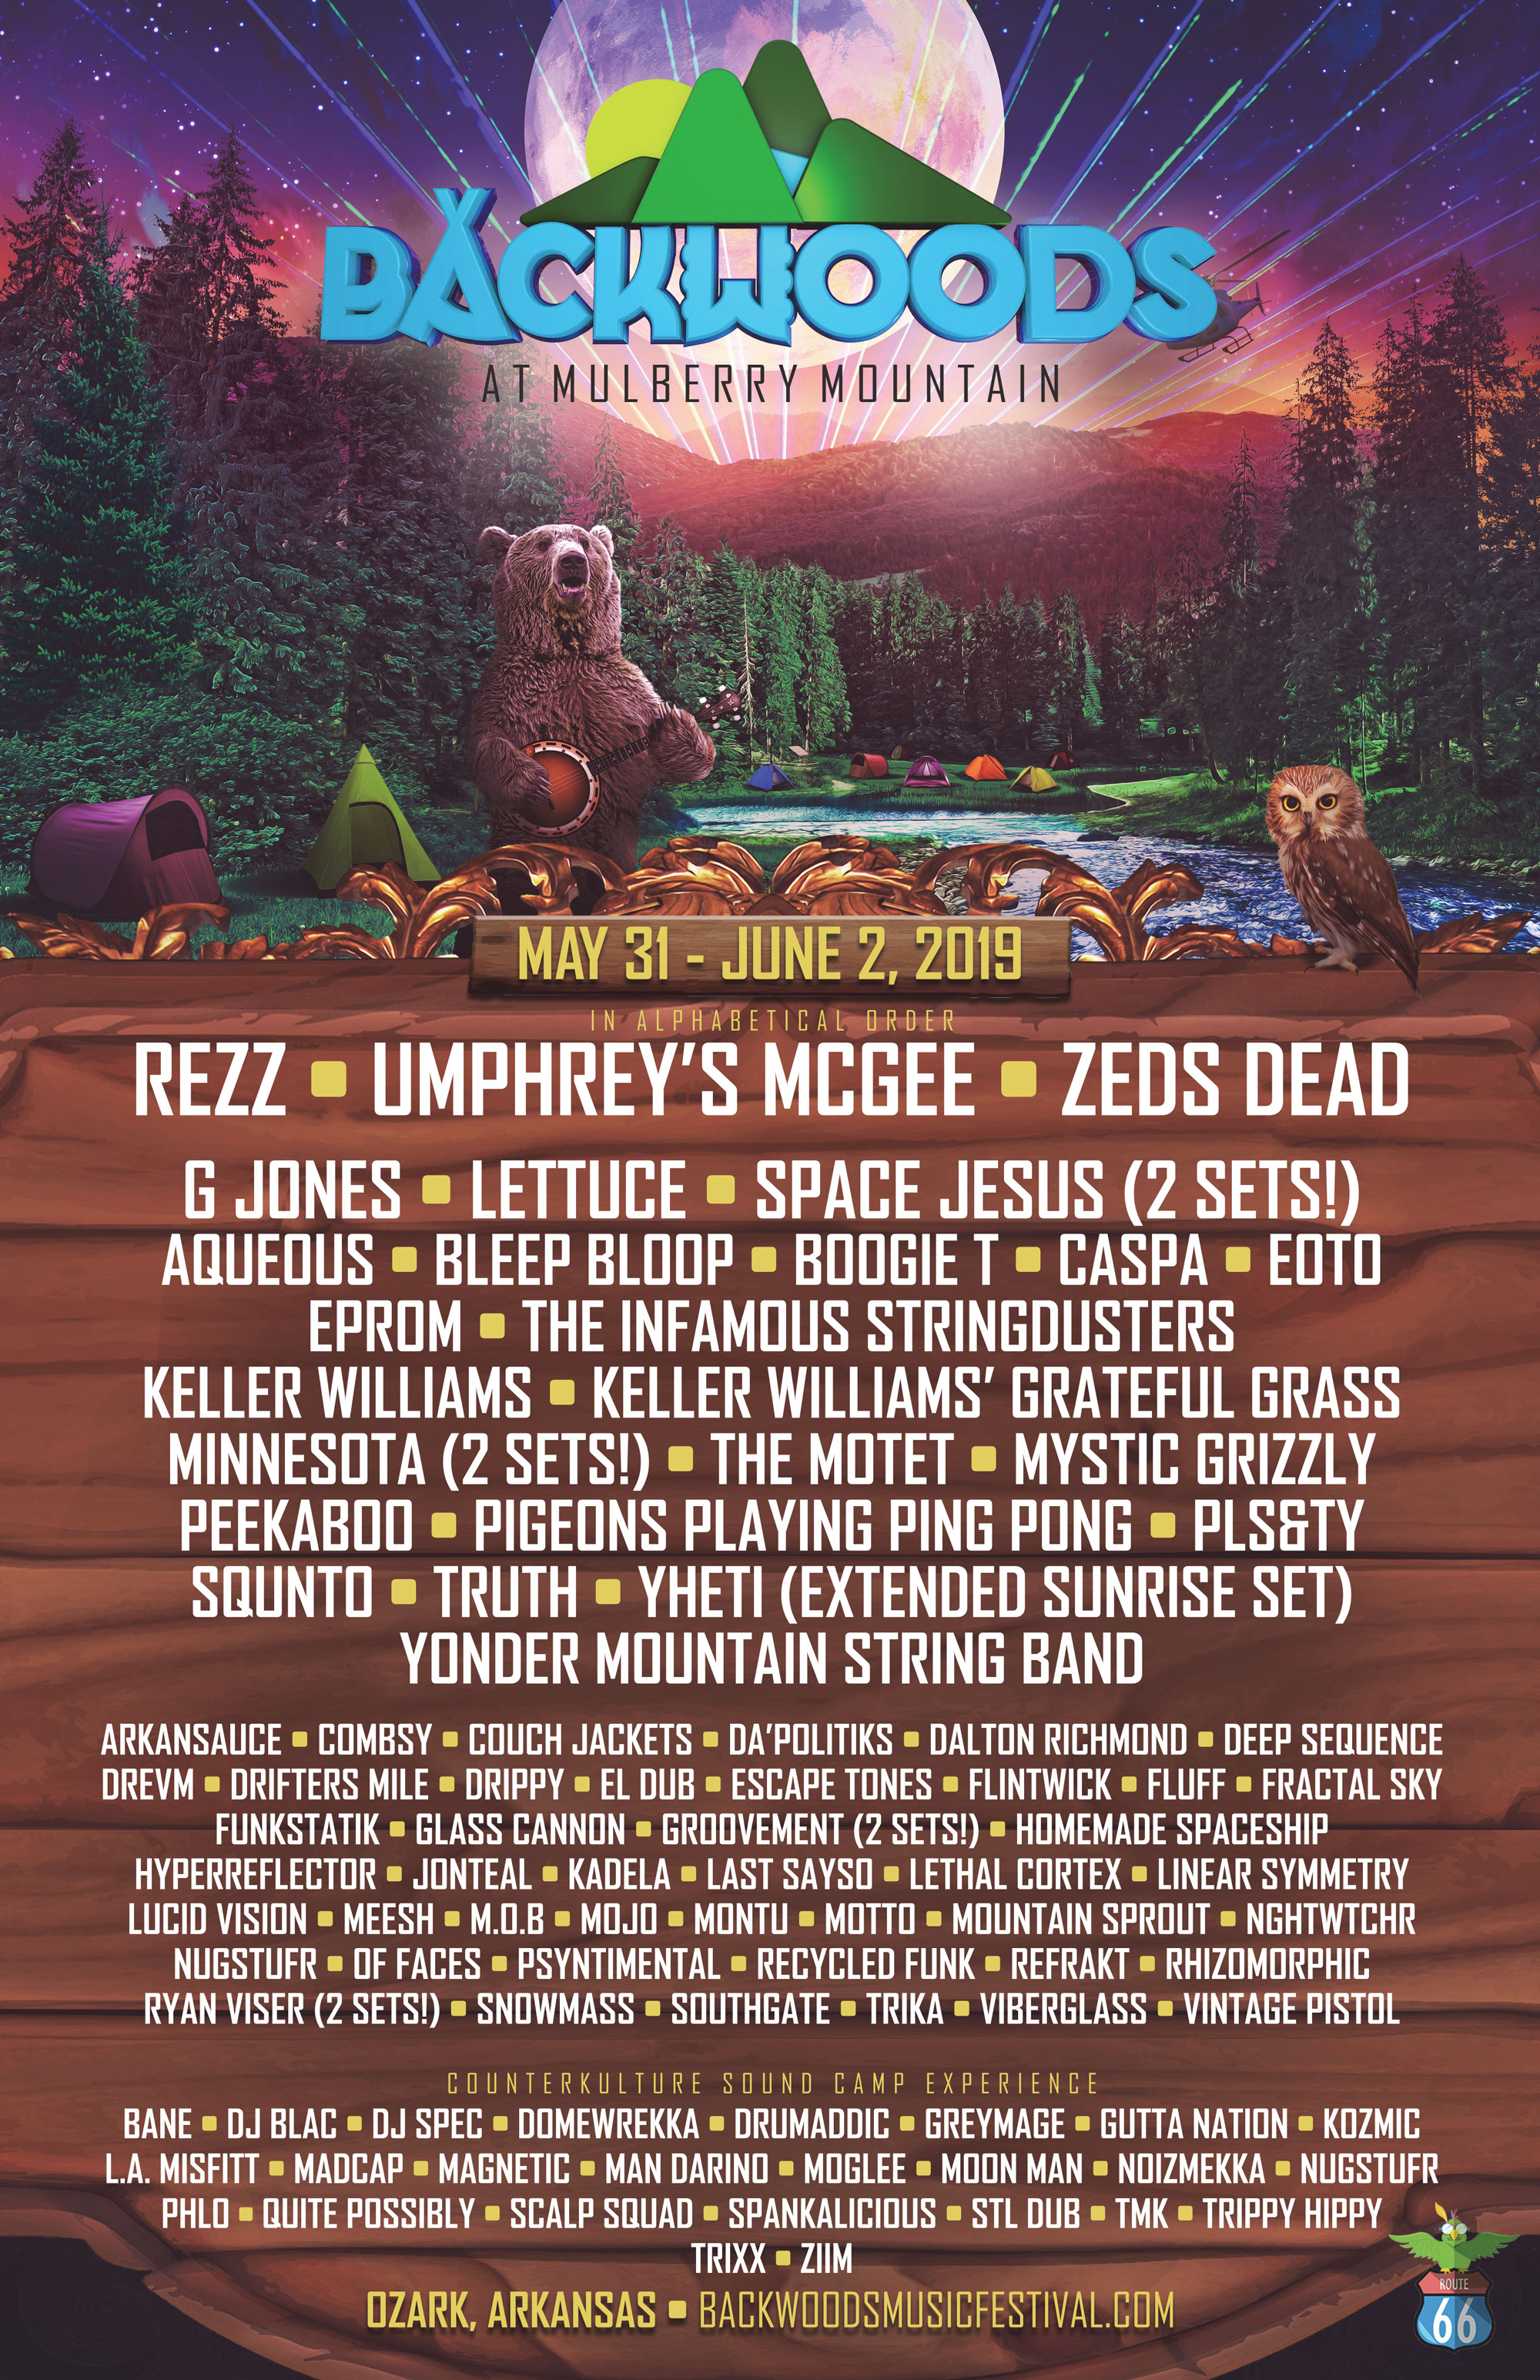 Backwoods2018_Lineup_11x17_NIGHT.jpg